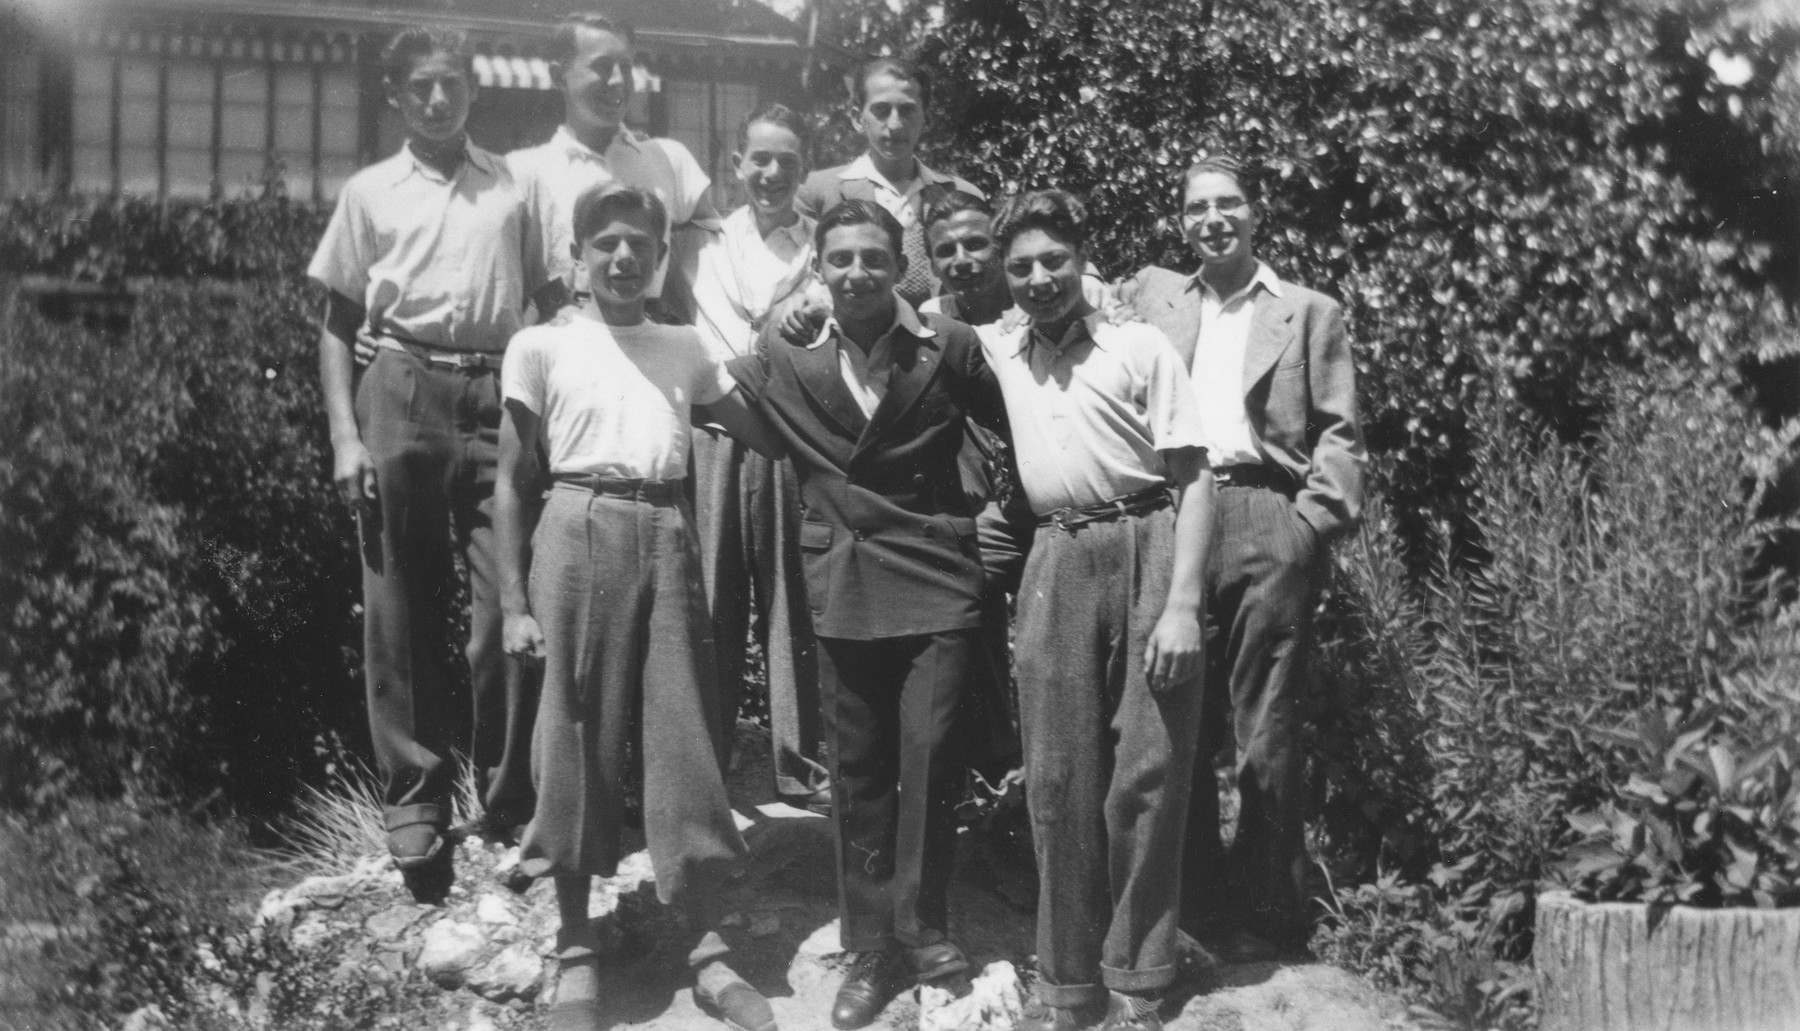 Group portrait of Jewish youth living at the Hôme de la Forêt children's home in Geneva, Switzerland.  Among those pictured are Gérard Alexander, Norbert Bikales, Heinz Diewold, Alex Kramskoi, David Hirsch and Walter Herzig.